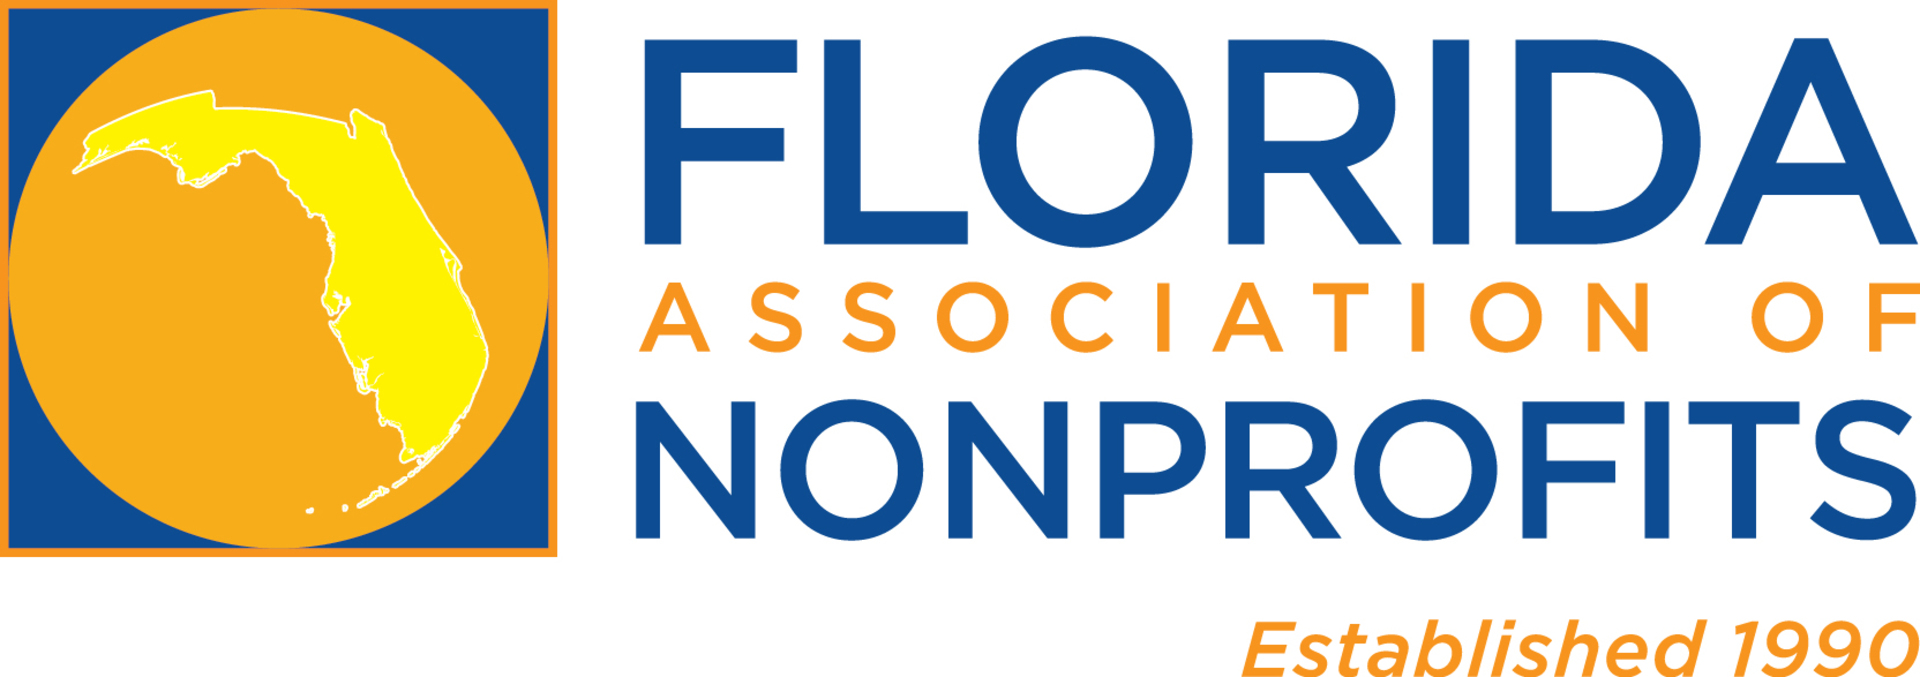 Florida Nonprofits Salute to Volunteers and Networking Event